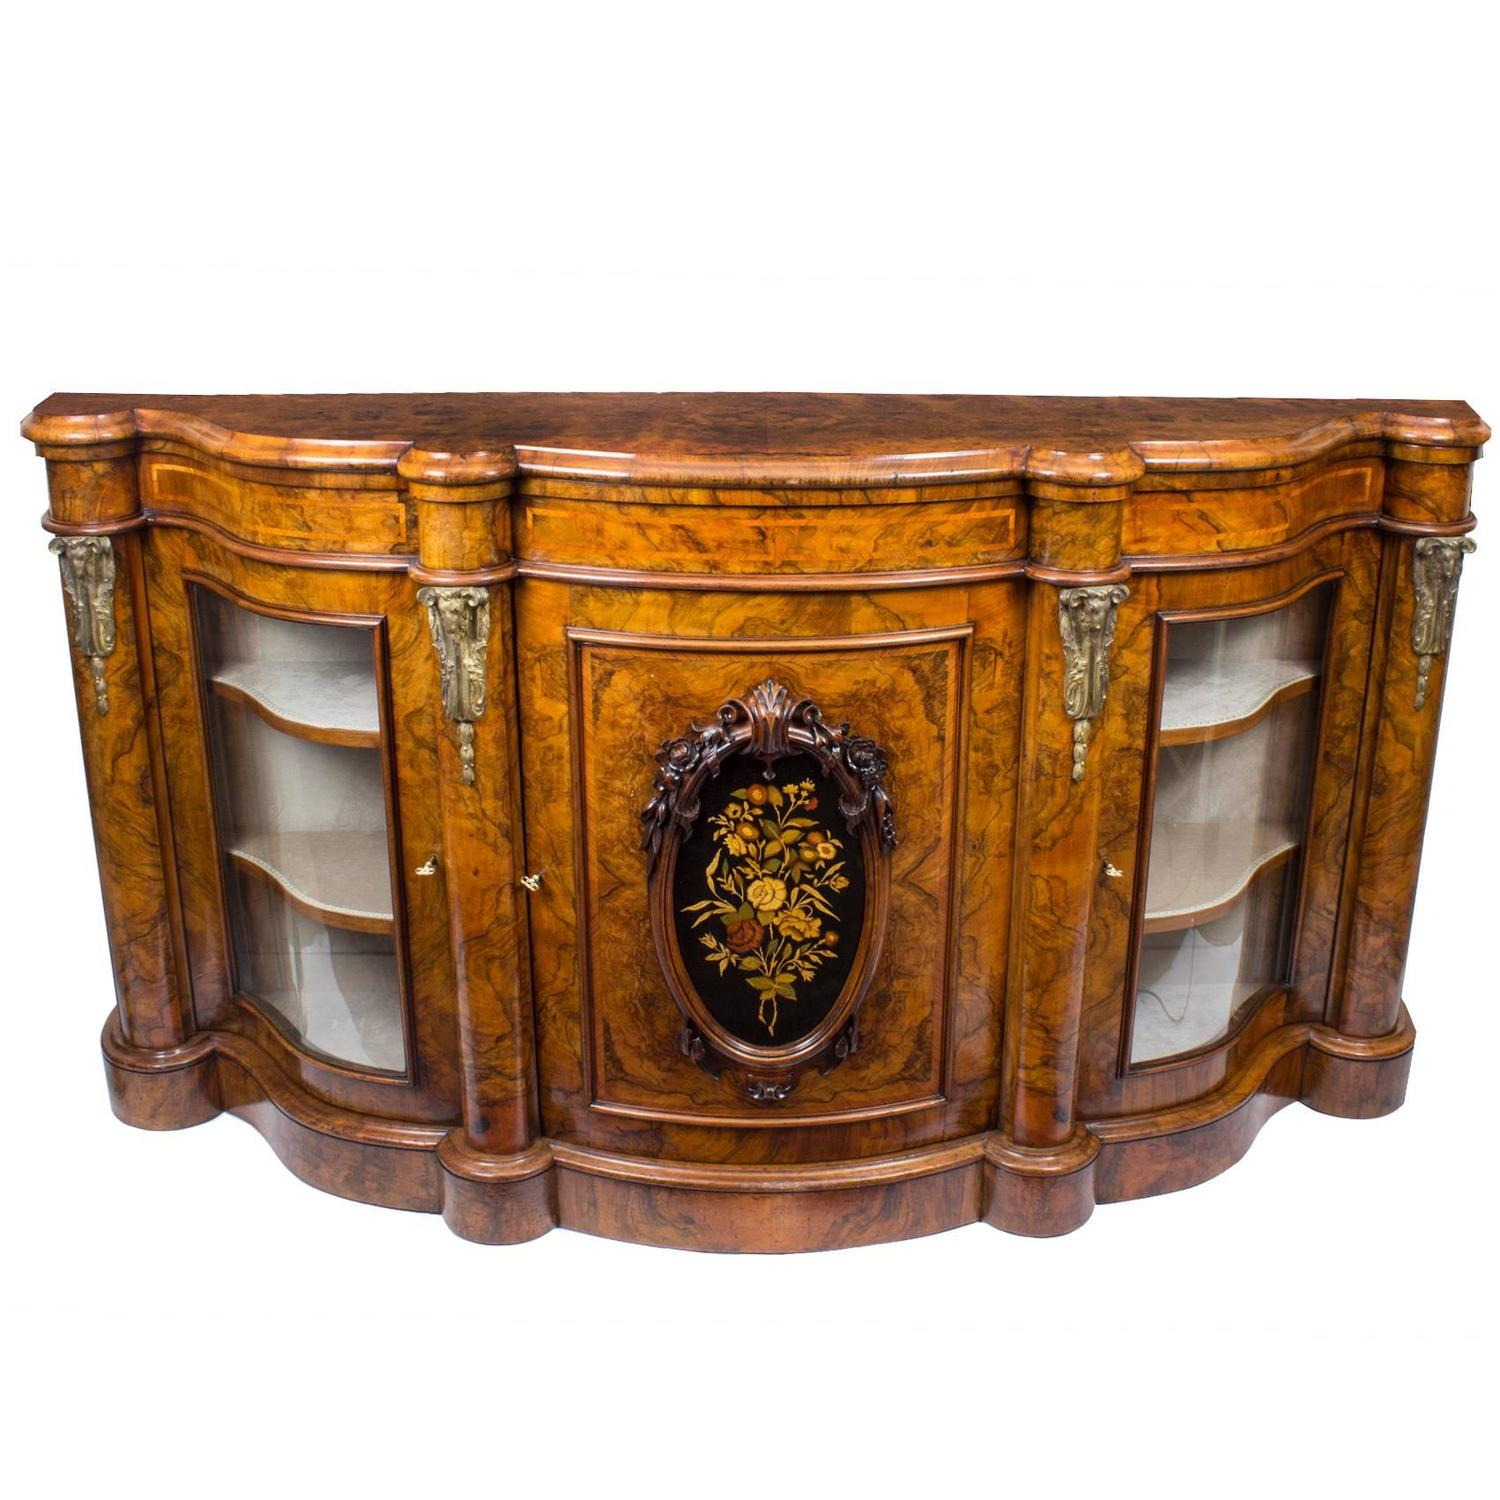 Antique Victorian Burr Walnut Serpentine Credenza circa 1860 For